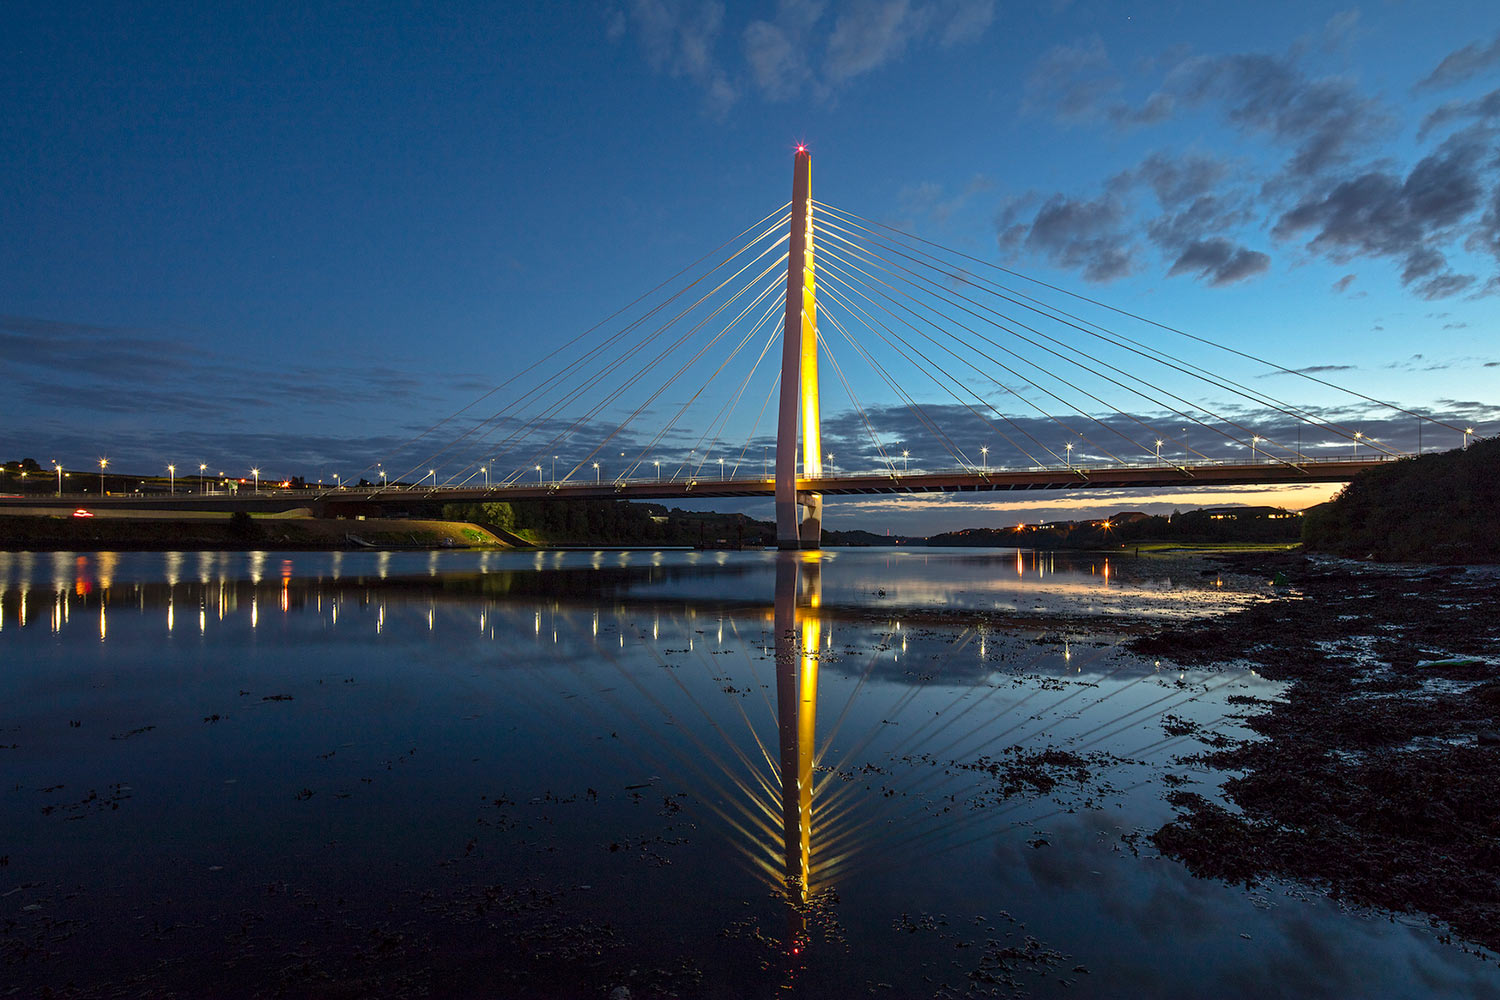 Northern Spire glows yellow between a moody river and grey sky